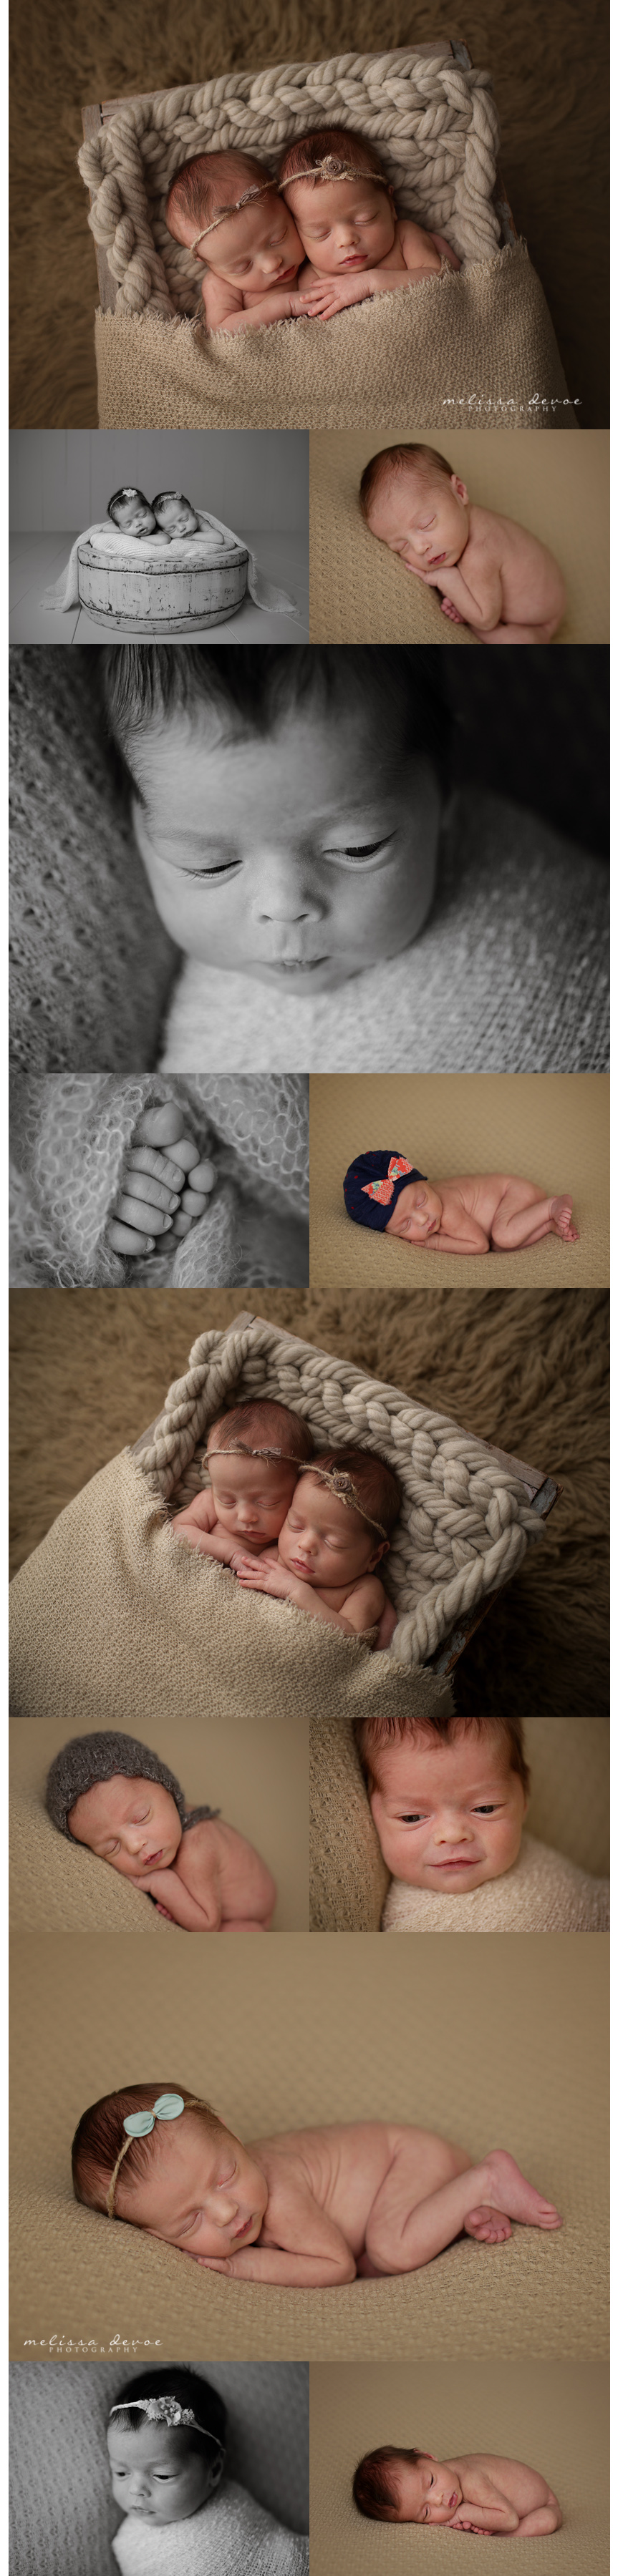 Melissa DeVoe Photography Raleigh Twins newborn Baby Photographer 1